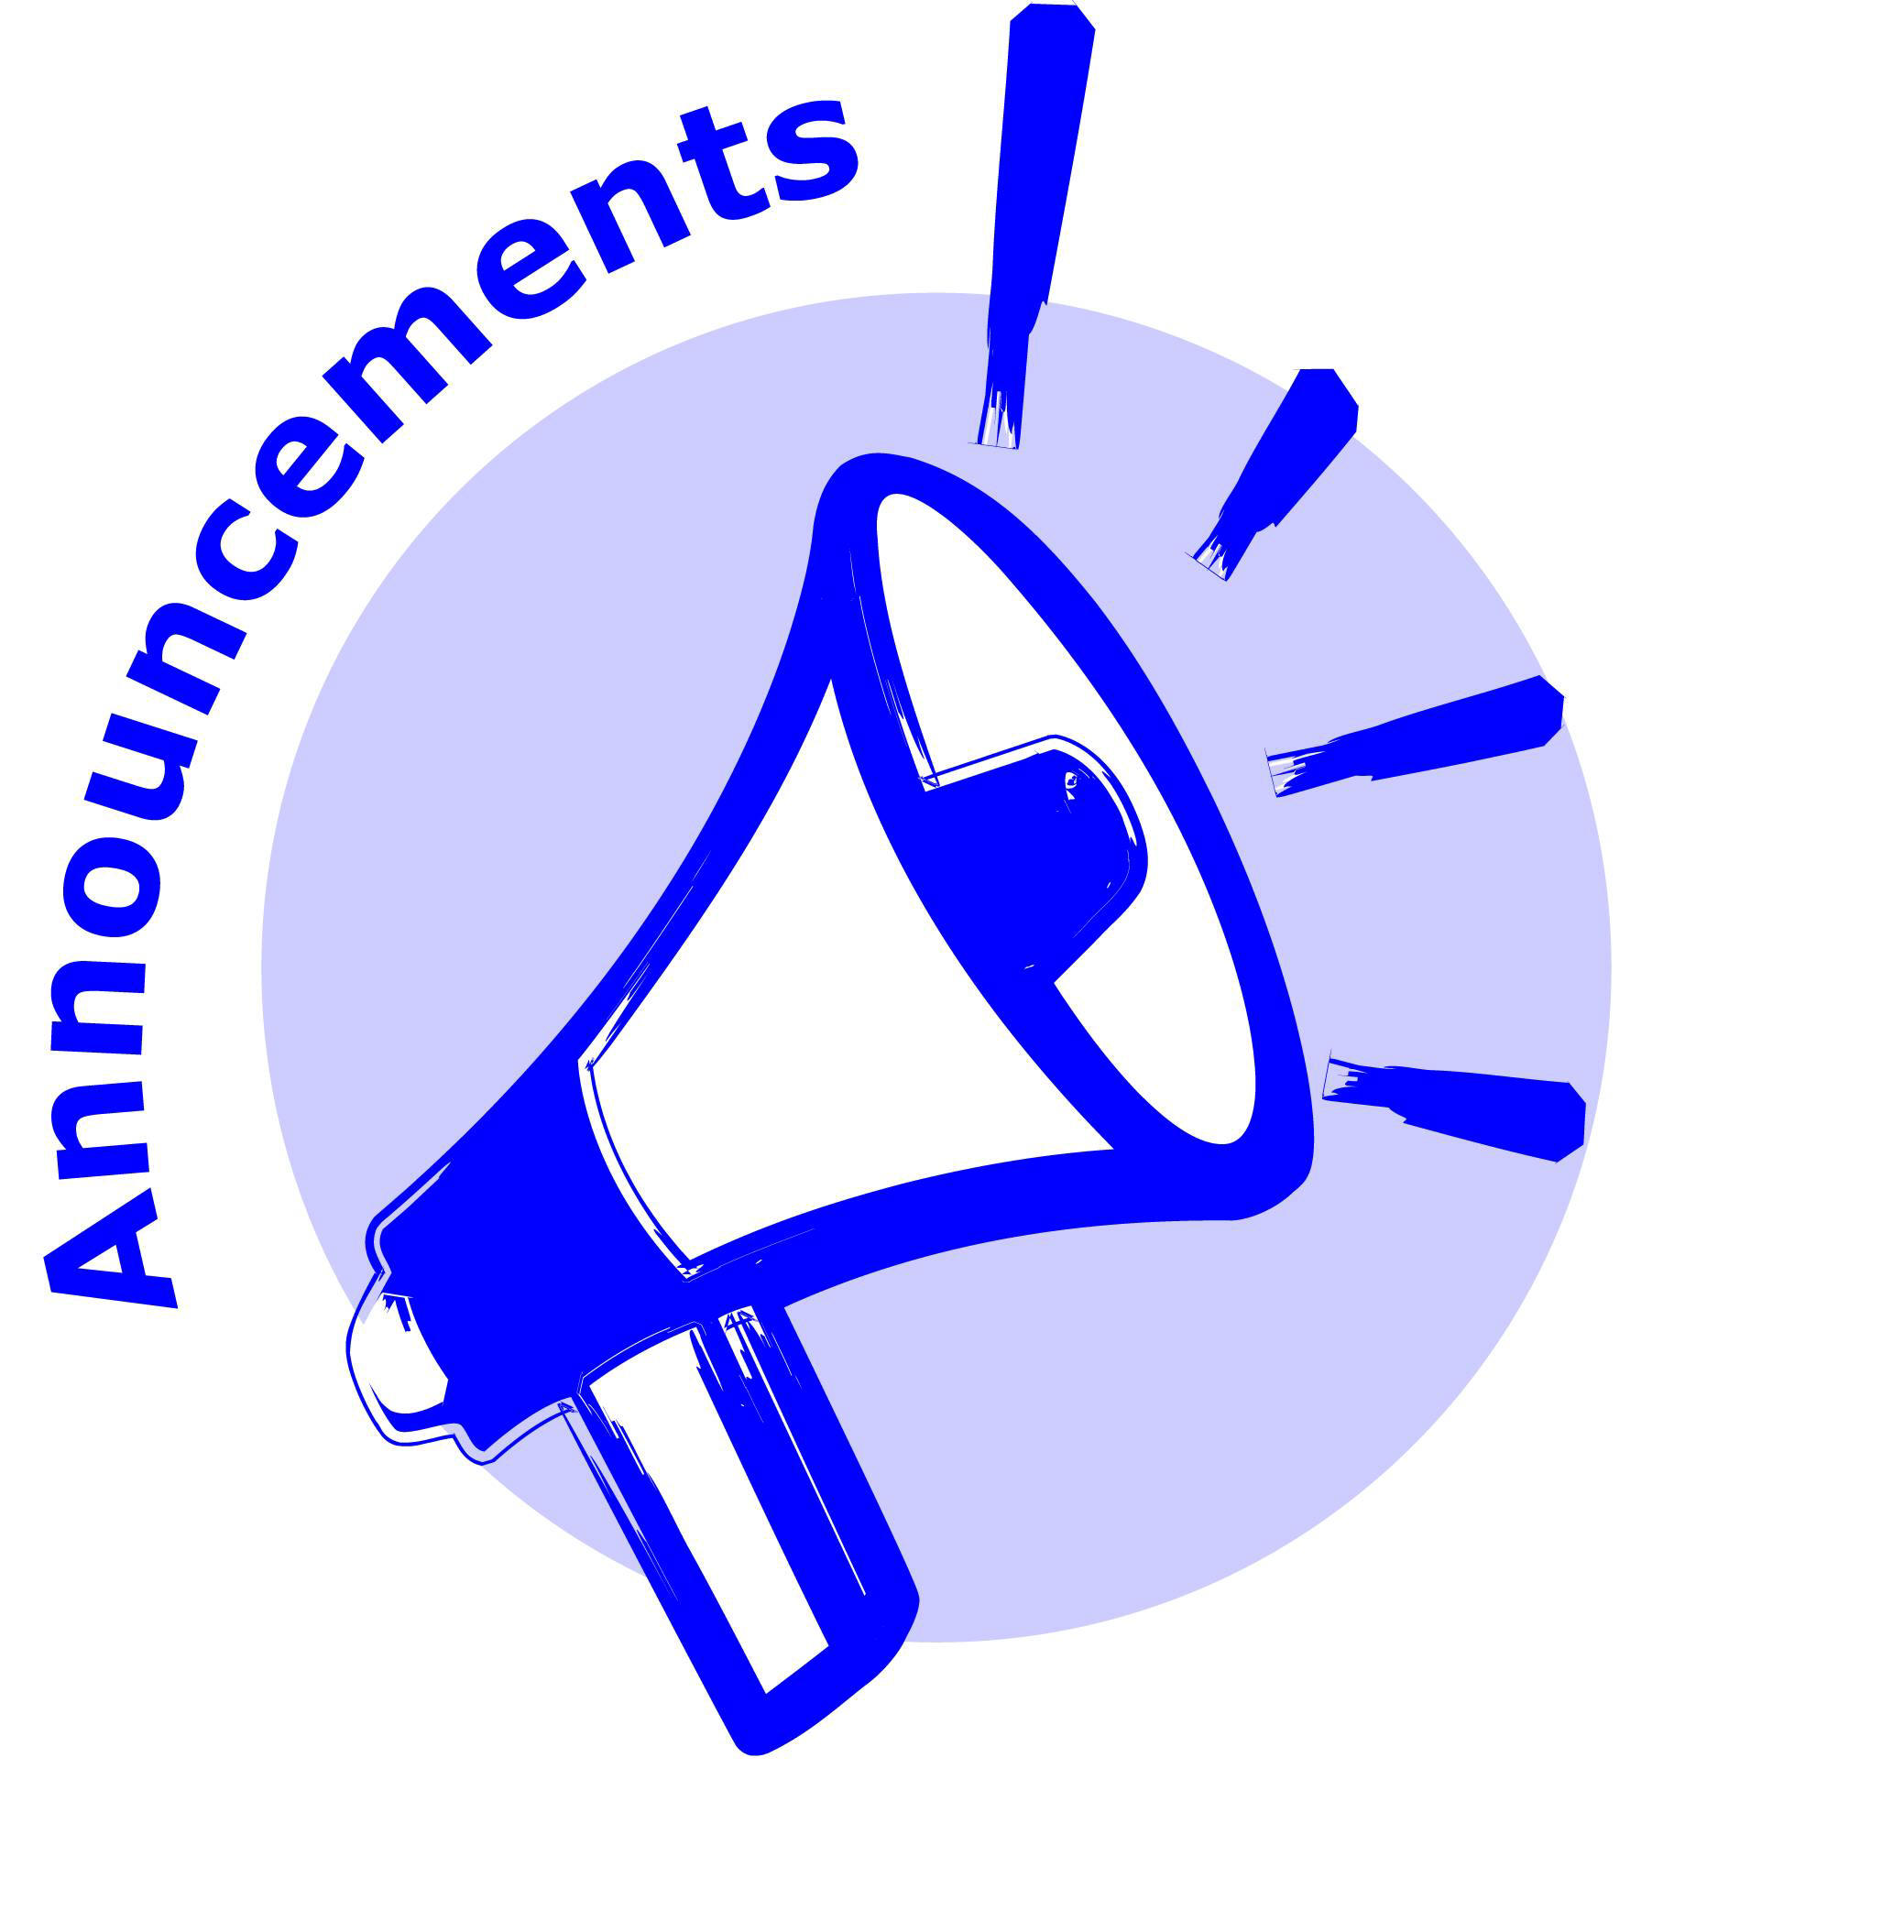 image library stock Announcements clipart. Free cliparts download clip